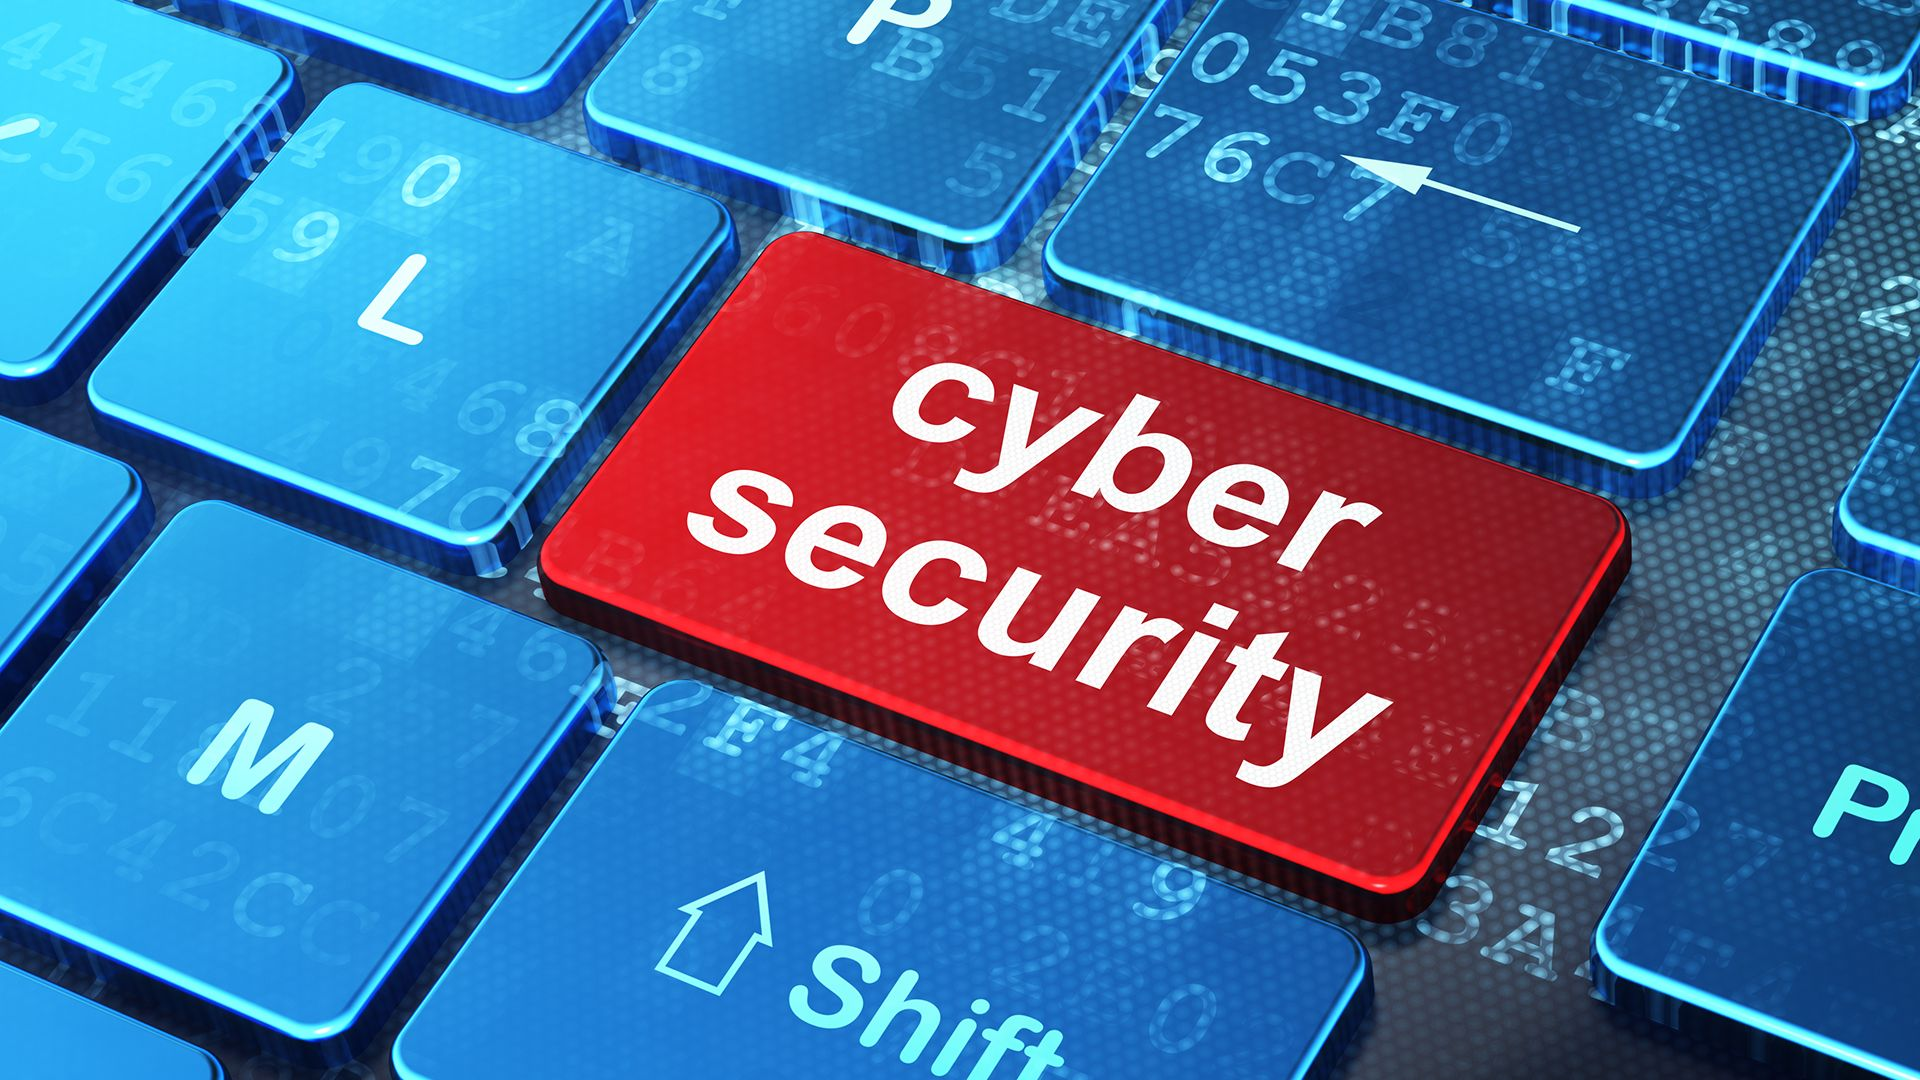 Greater vigilance needed against cybersecurity attacks on Australia